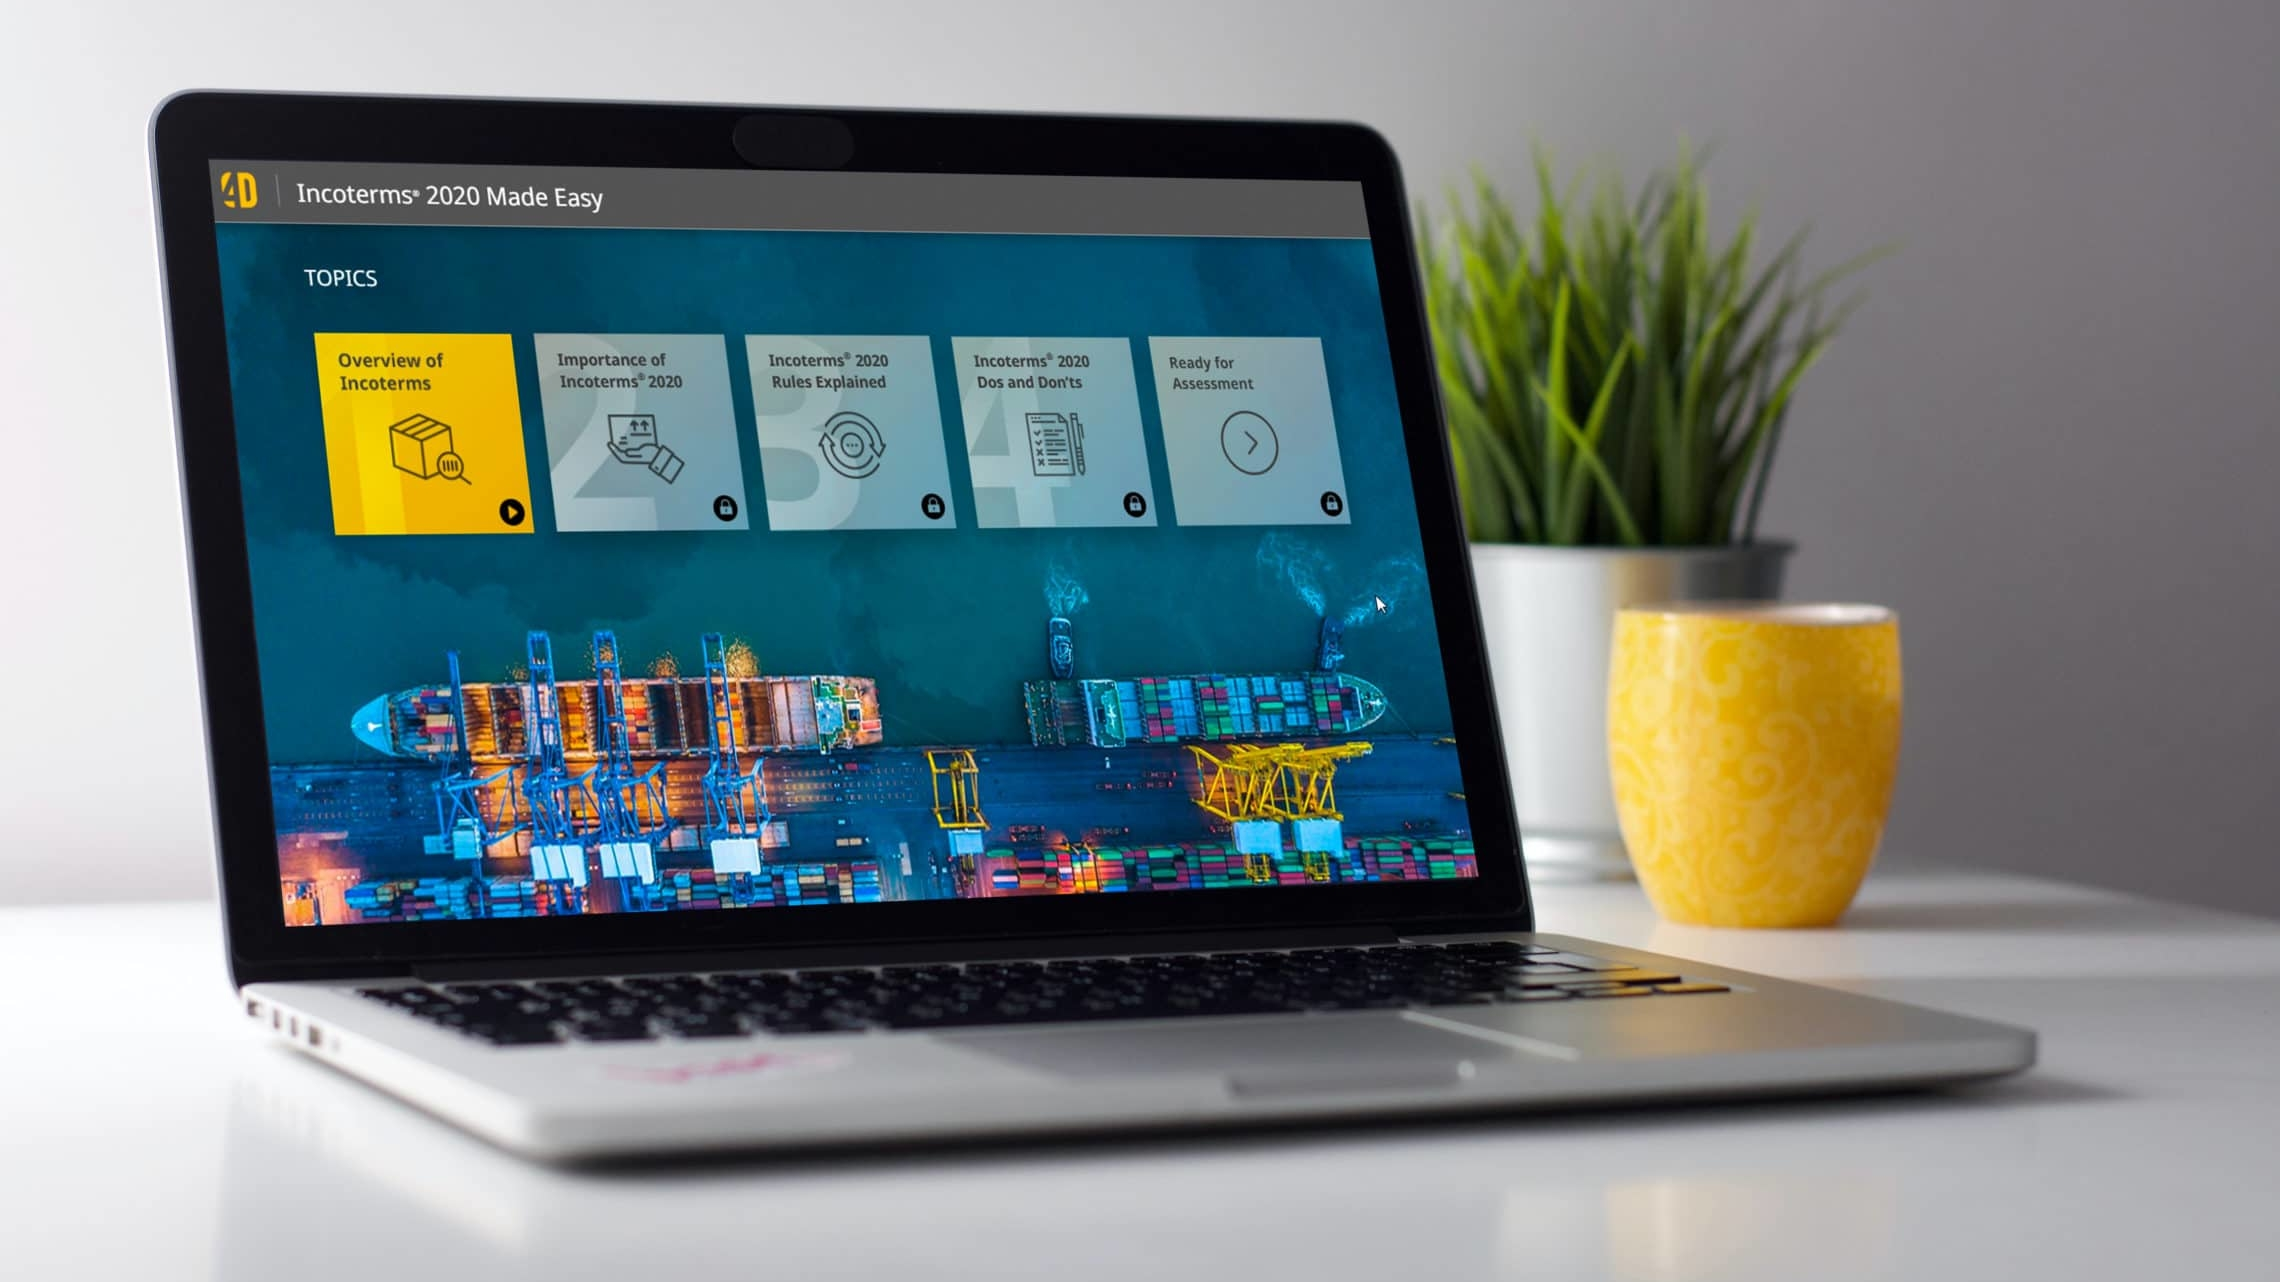 eLearning software running on a laptop